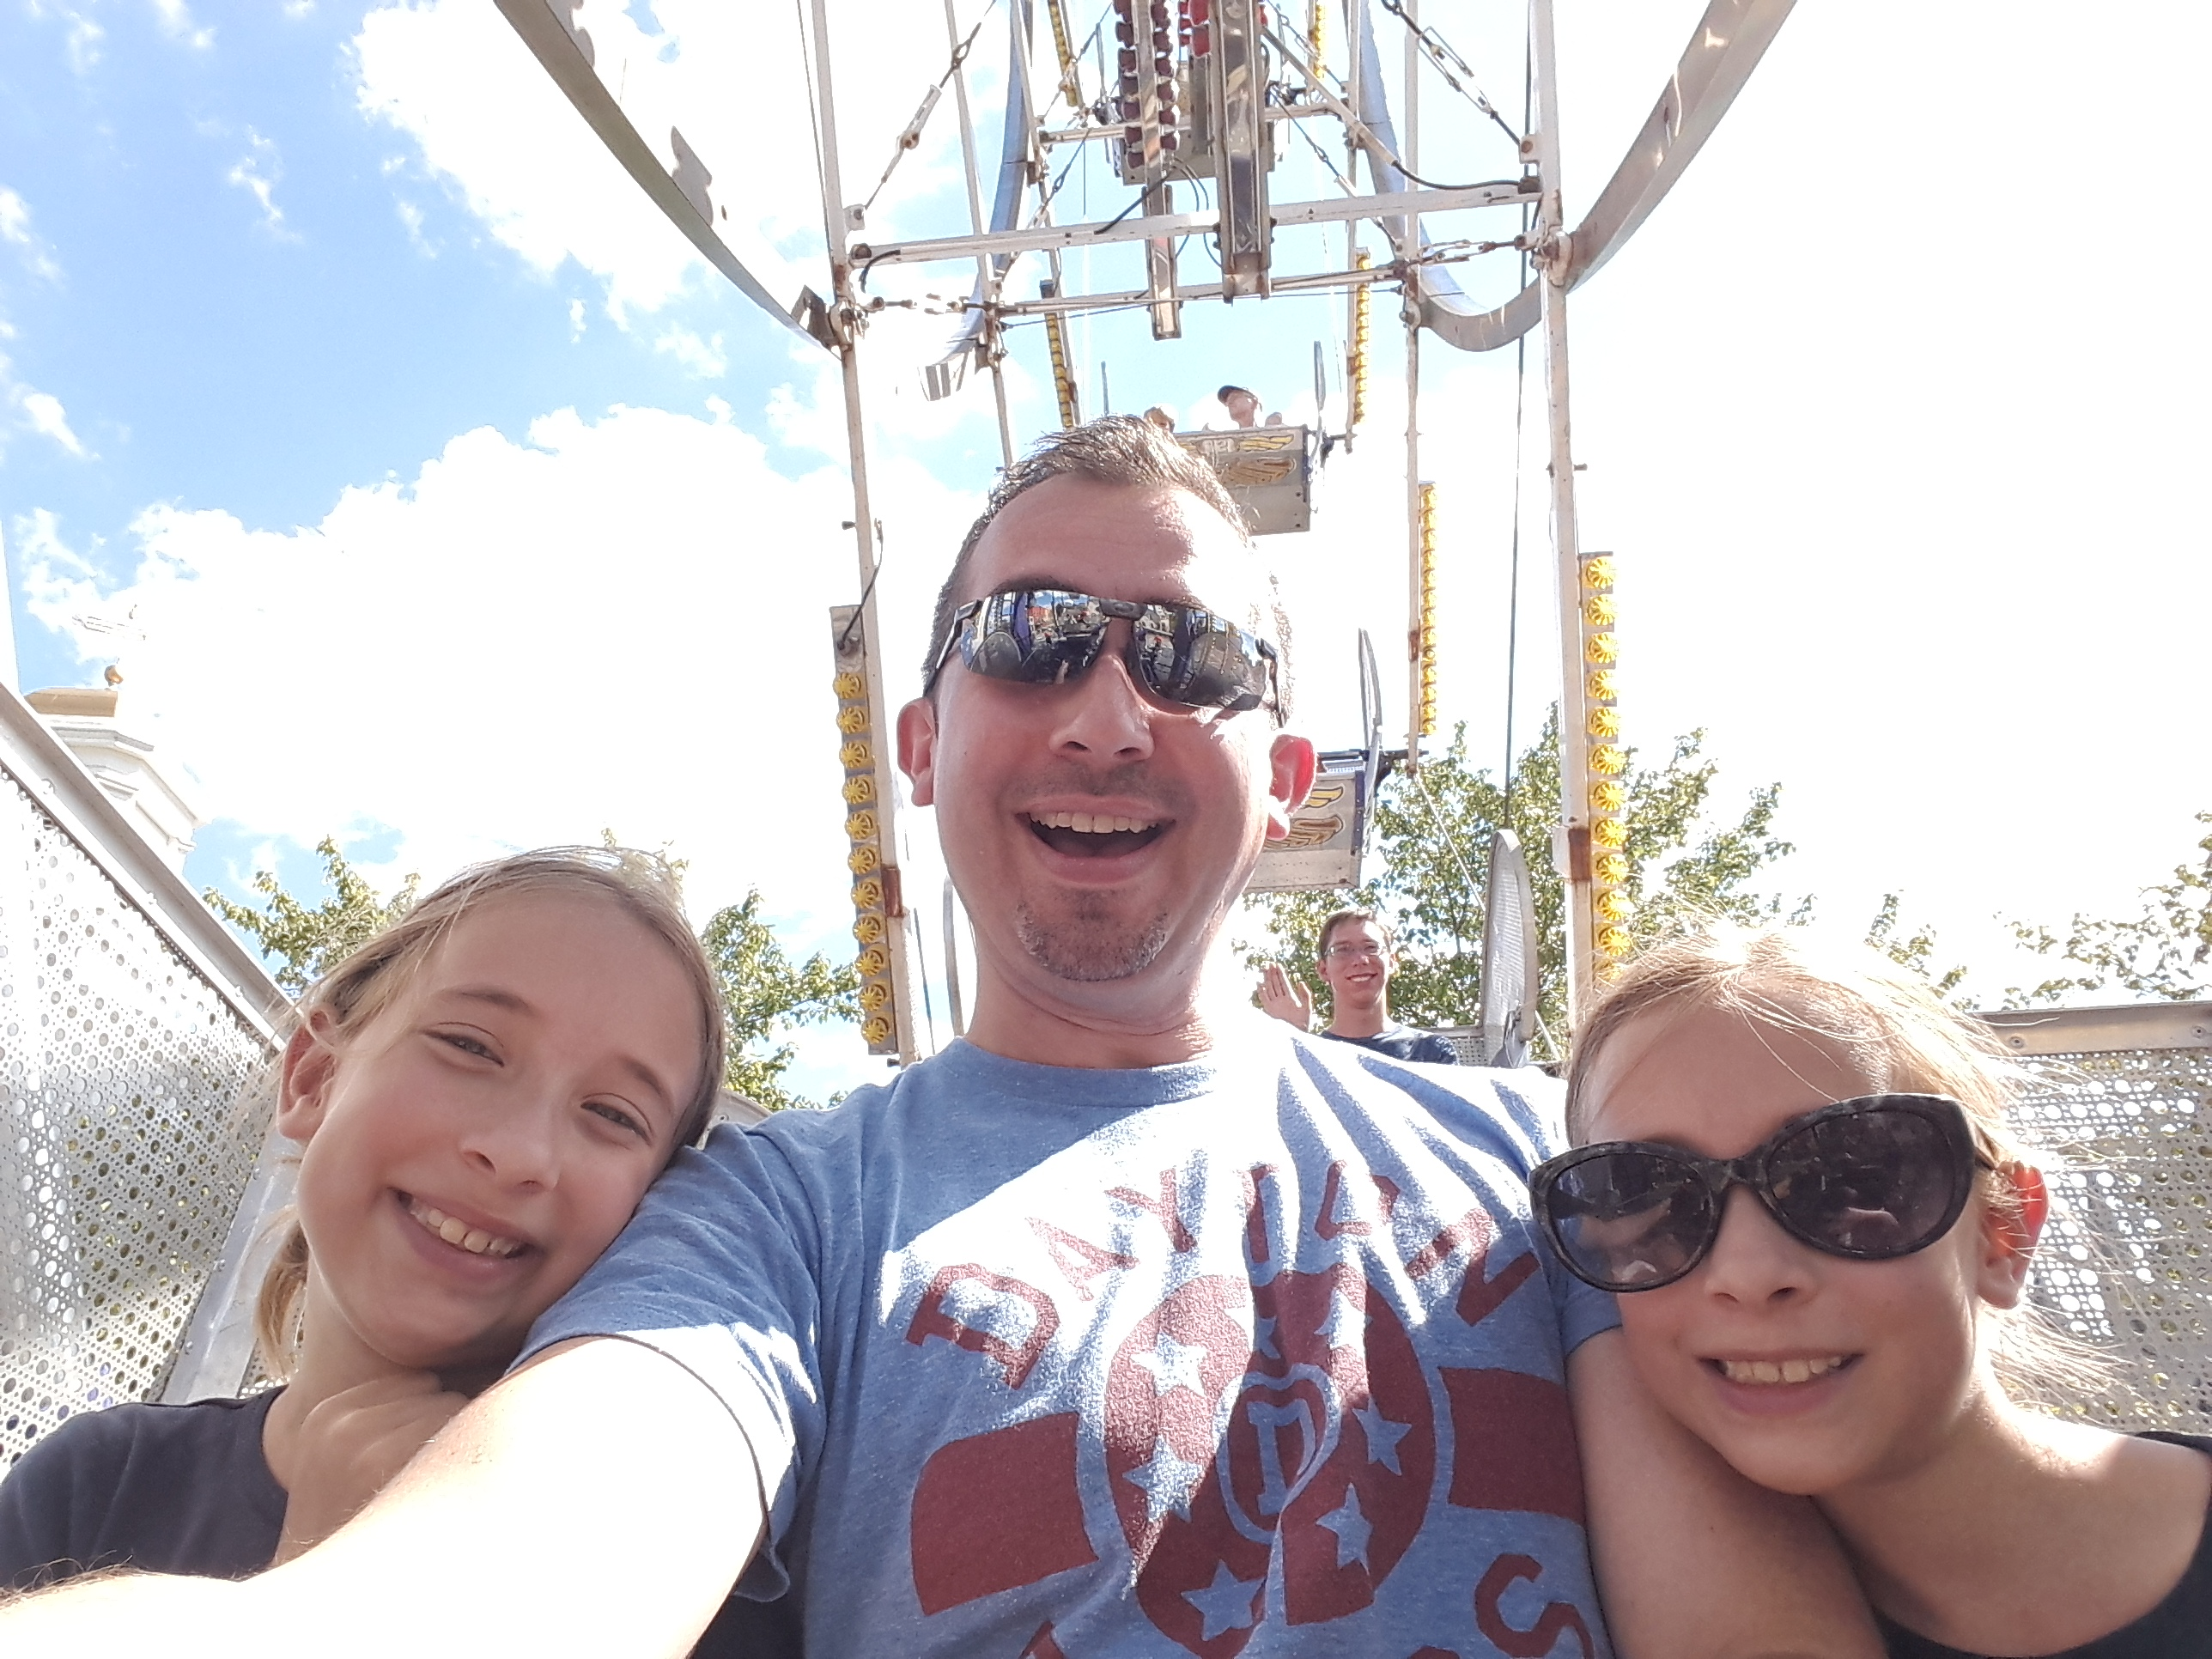 Dan Katona and his daughters on a ferris wheel